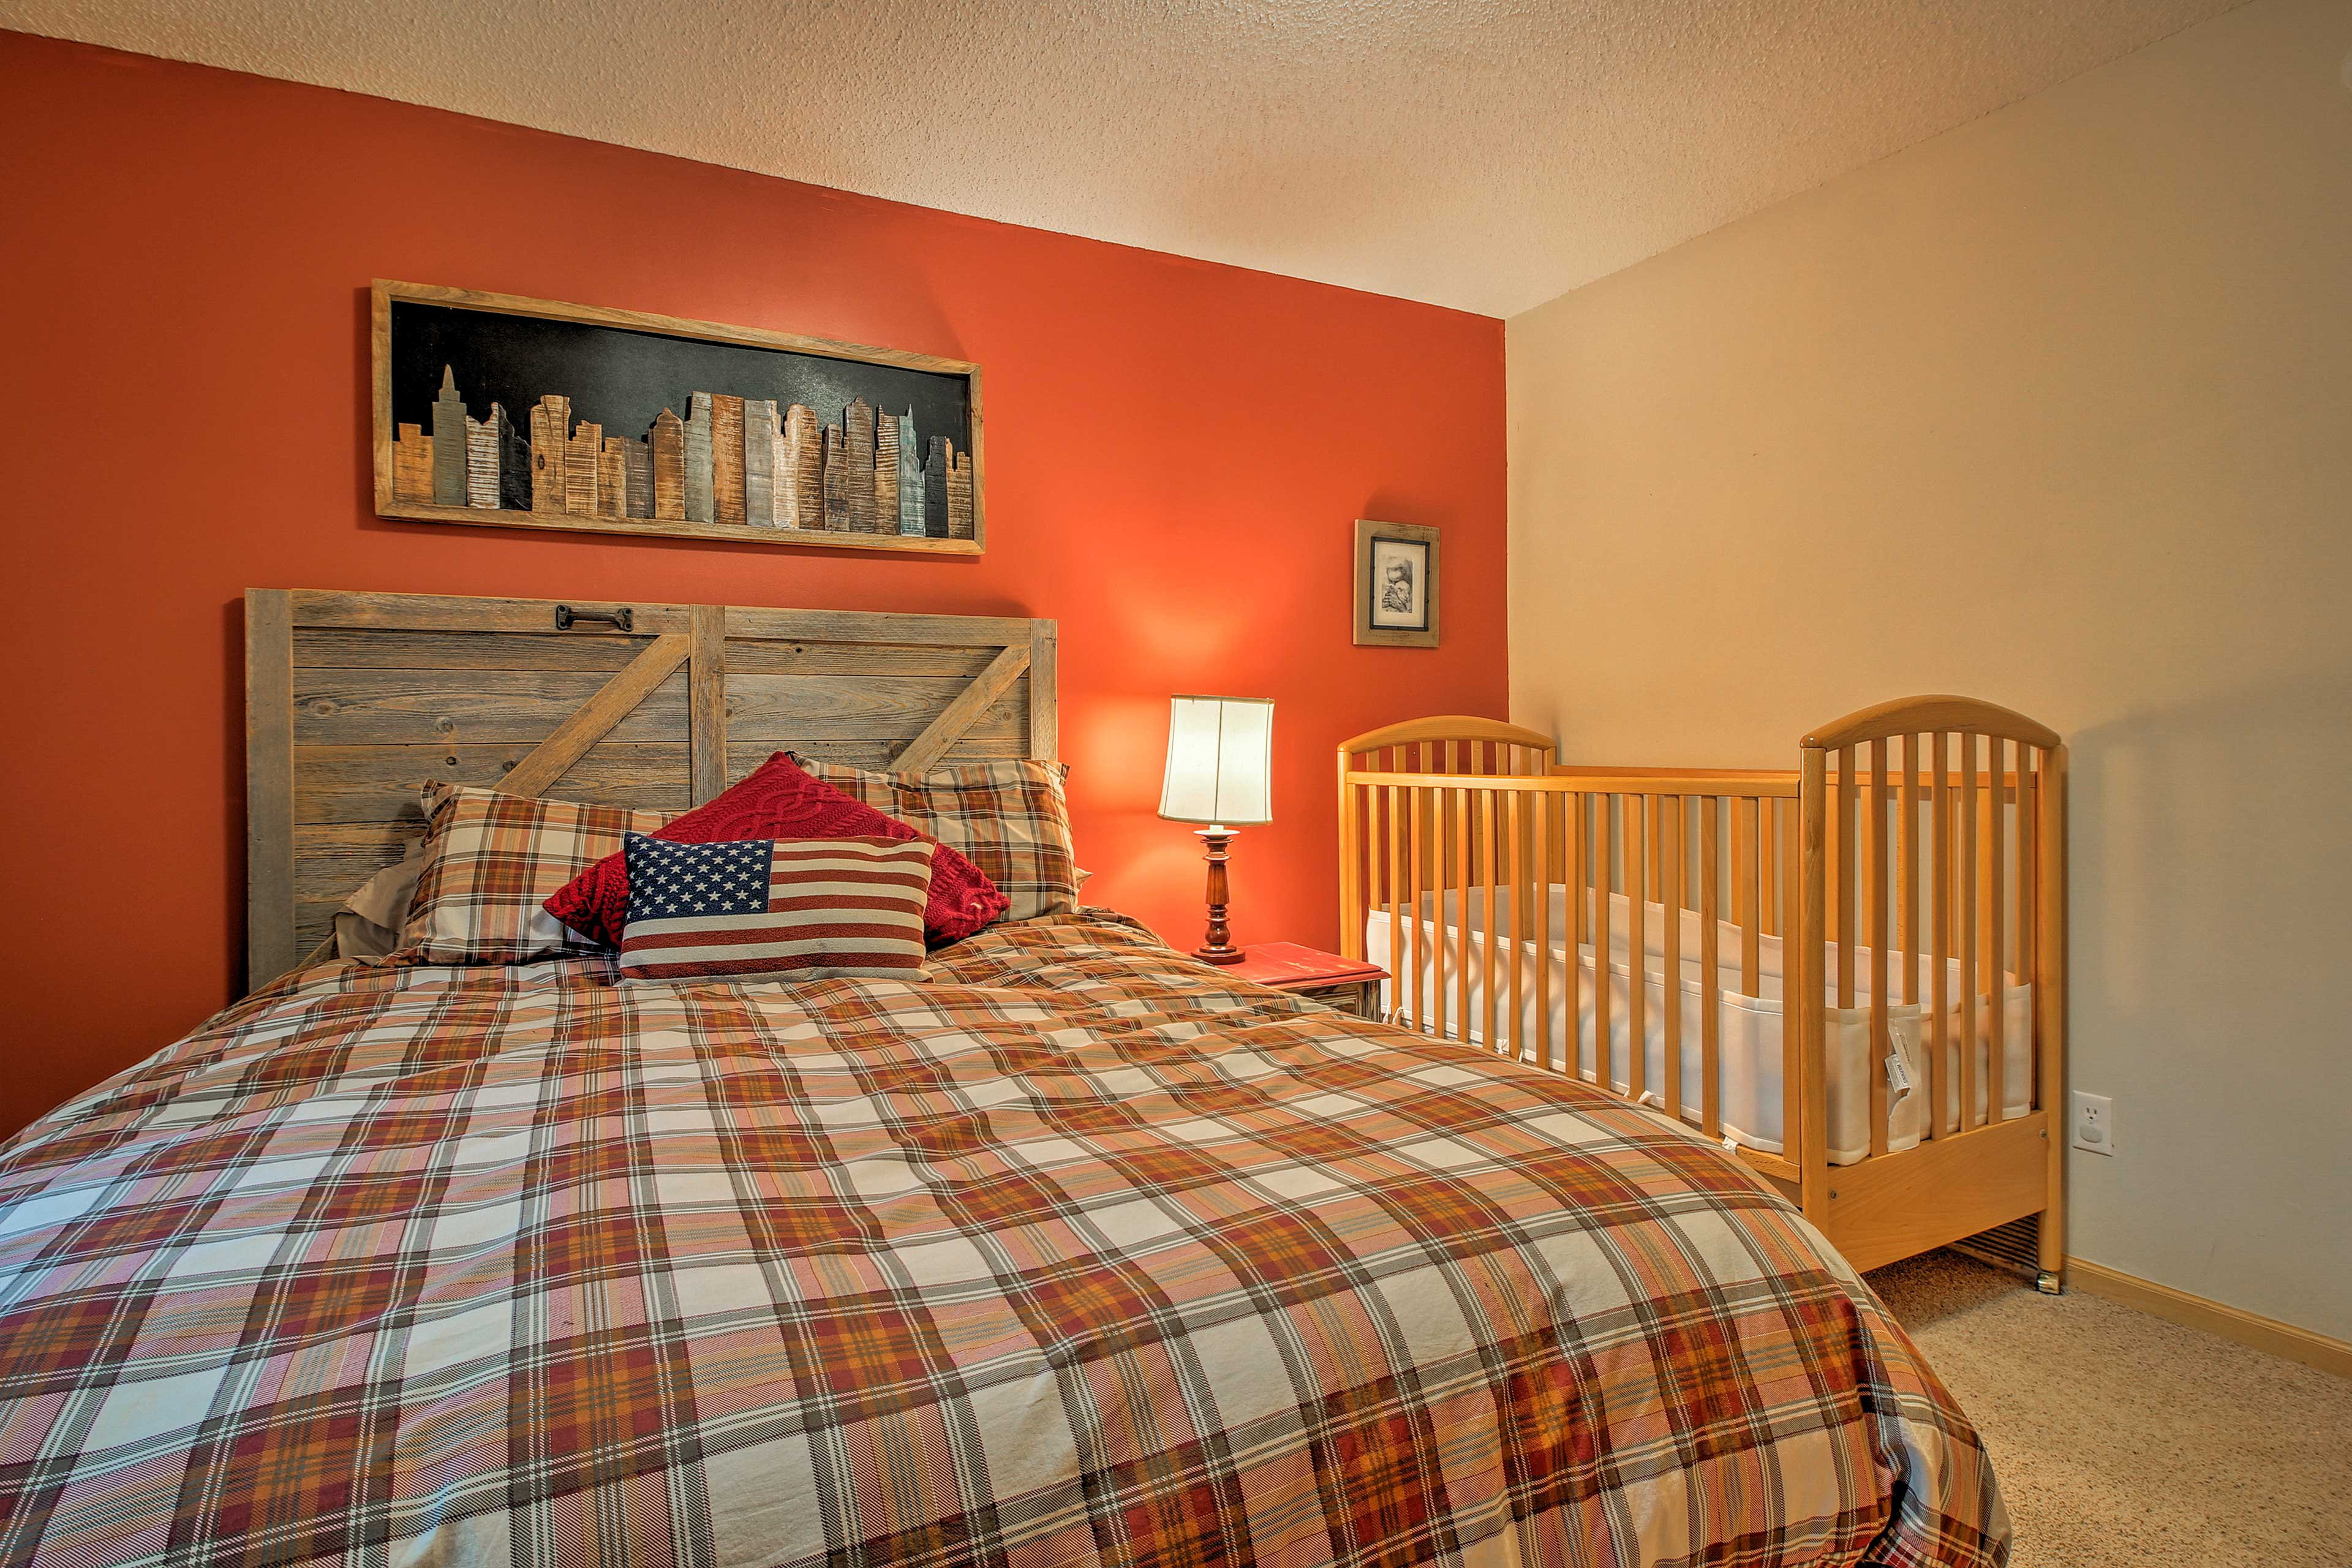 This room also comes with a baby crib!